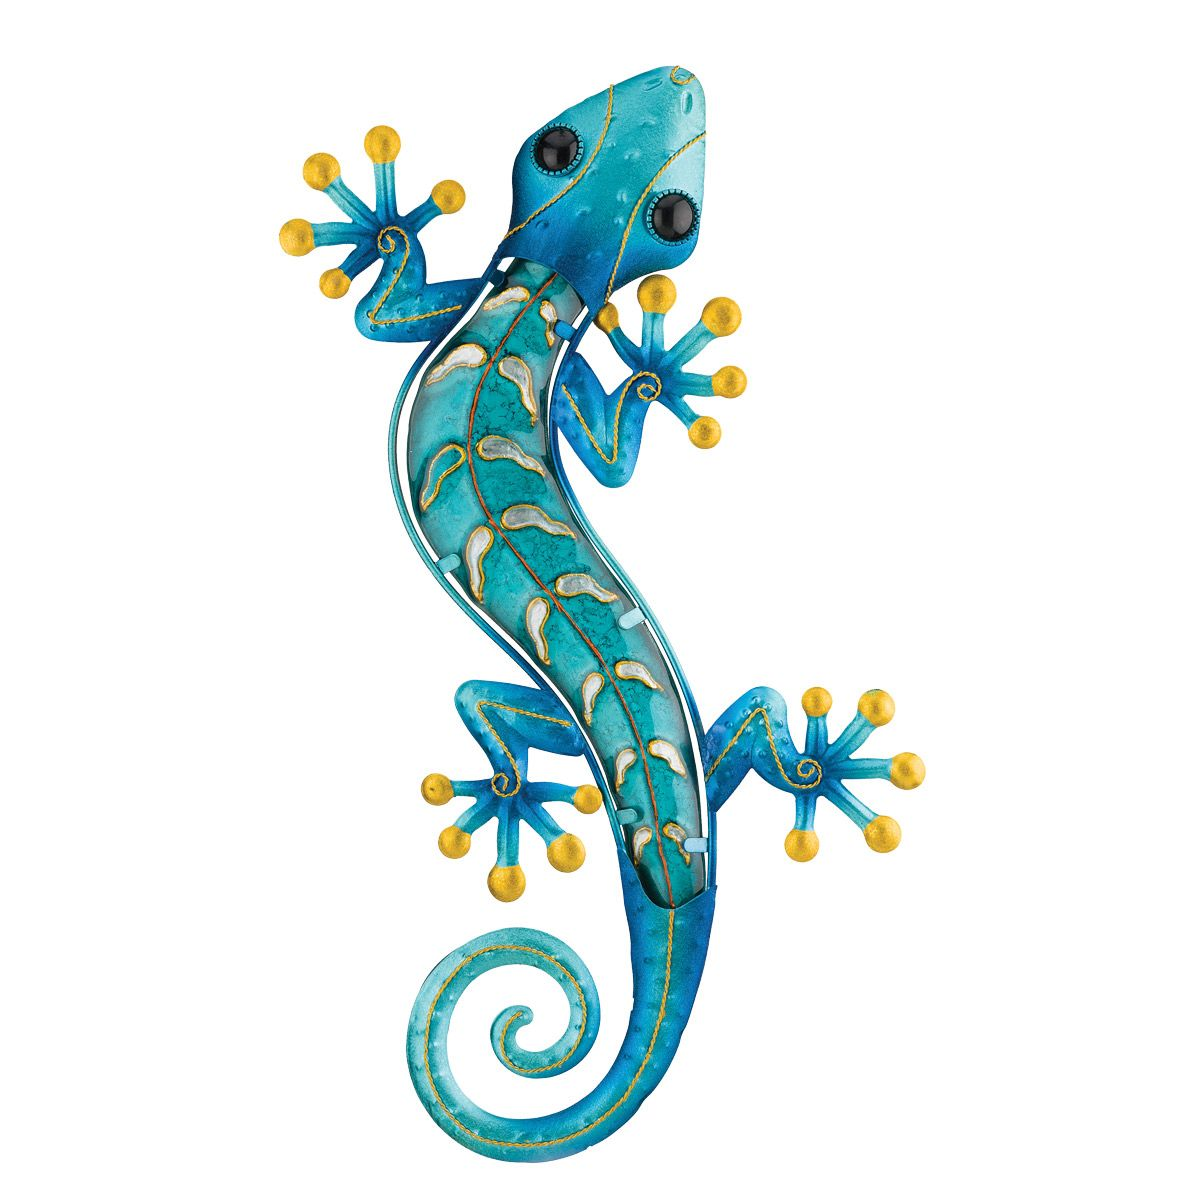 Metal Gecko Wall Art - Blue